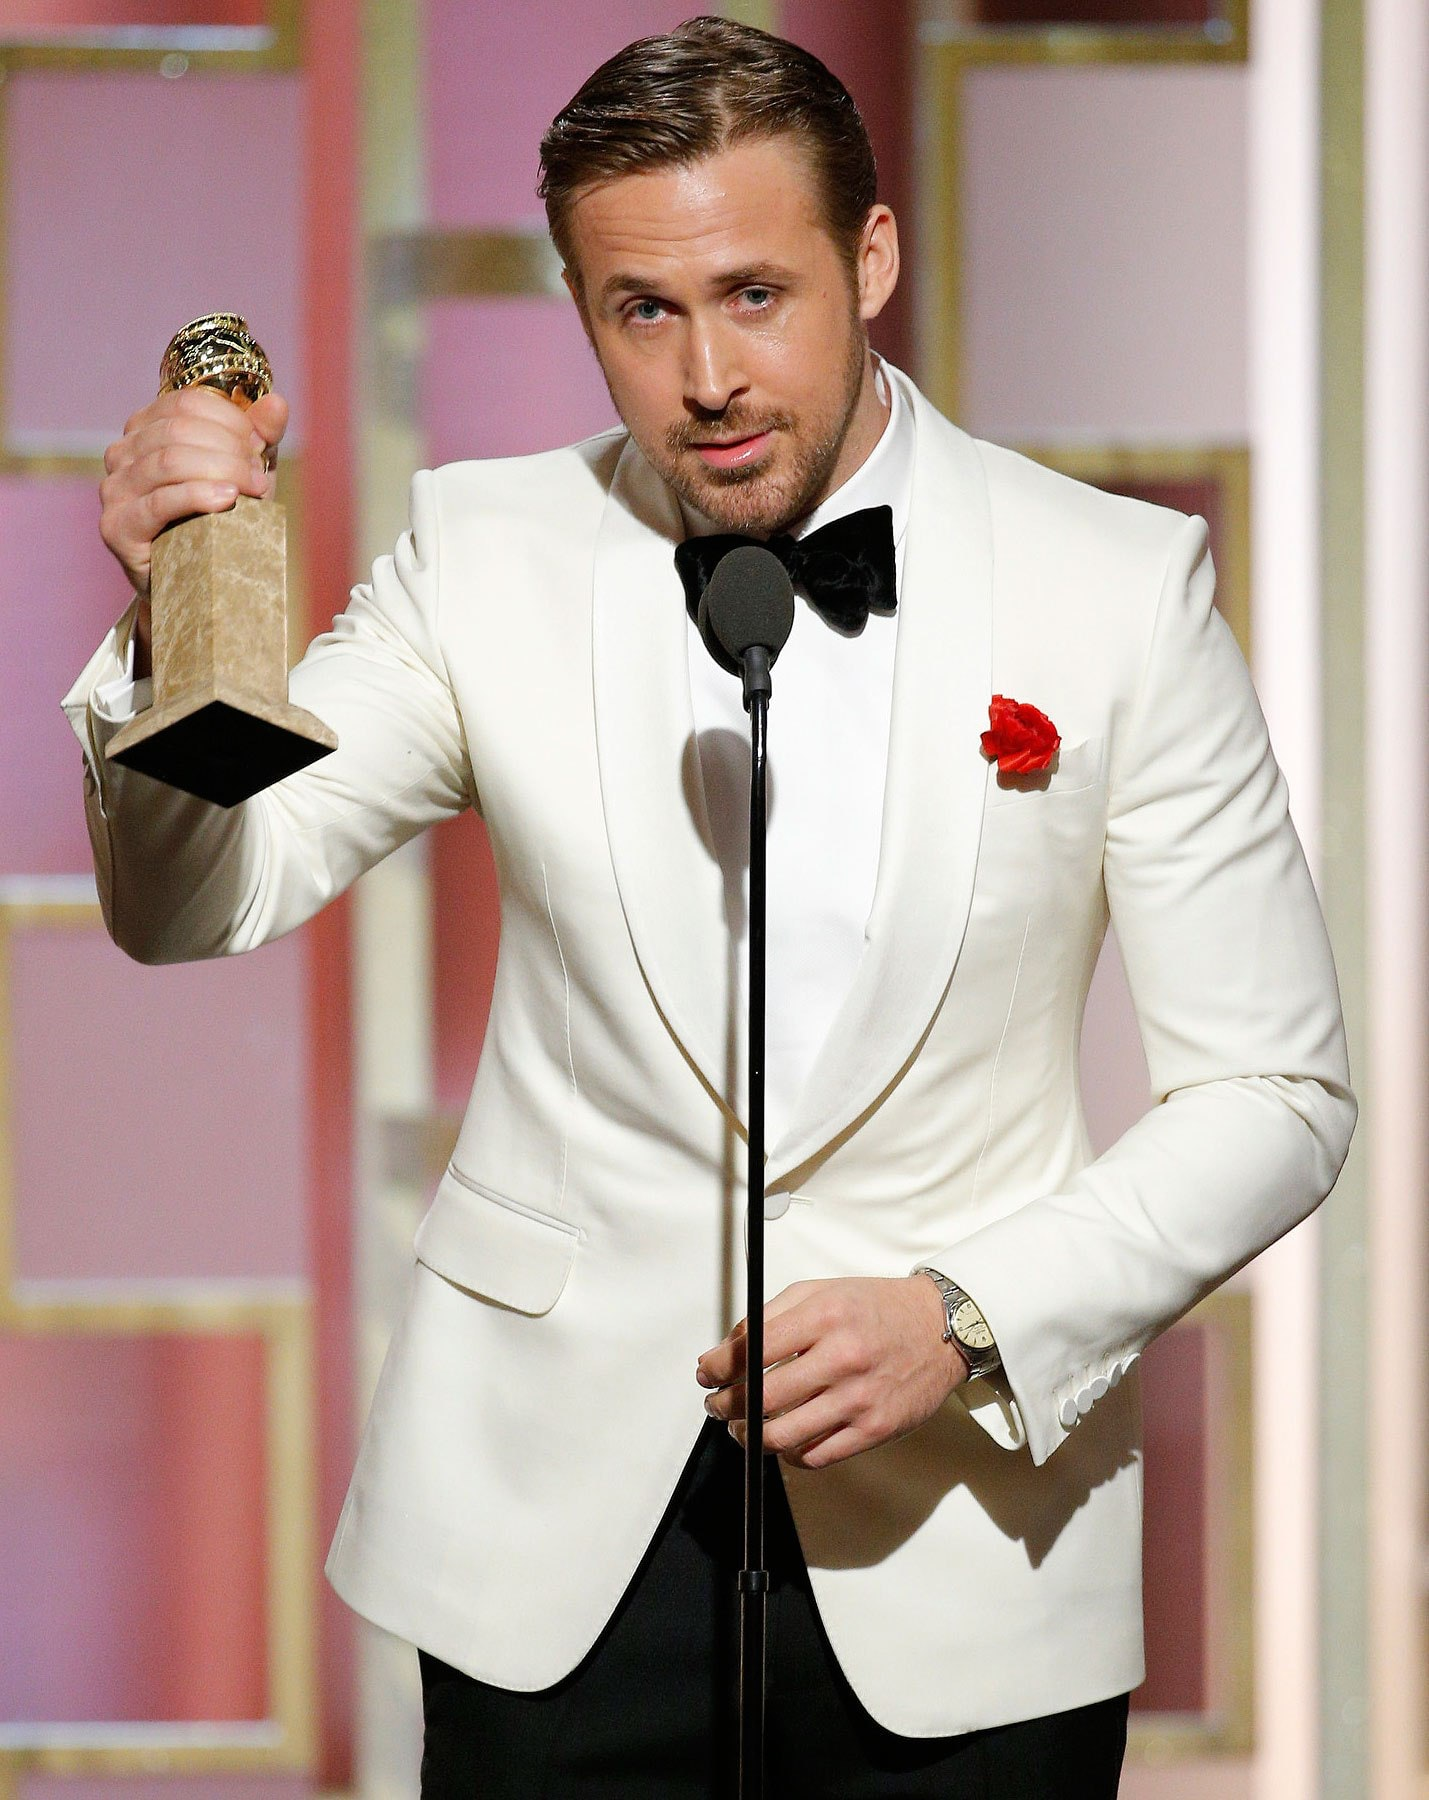 Watch Spotting: Ryan Gosling Wearing An Awesome Vintage Rolex At The 2017 Golden Globes, Because He Is Ryan Gosling Watch Spotting: Ryan Gosling Wearing An Awesome Vintage Rolex At The 2017 Golden Globes, Because He Is Ryan Gosling ryan gosling4